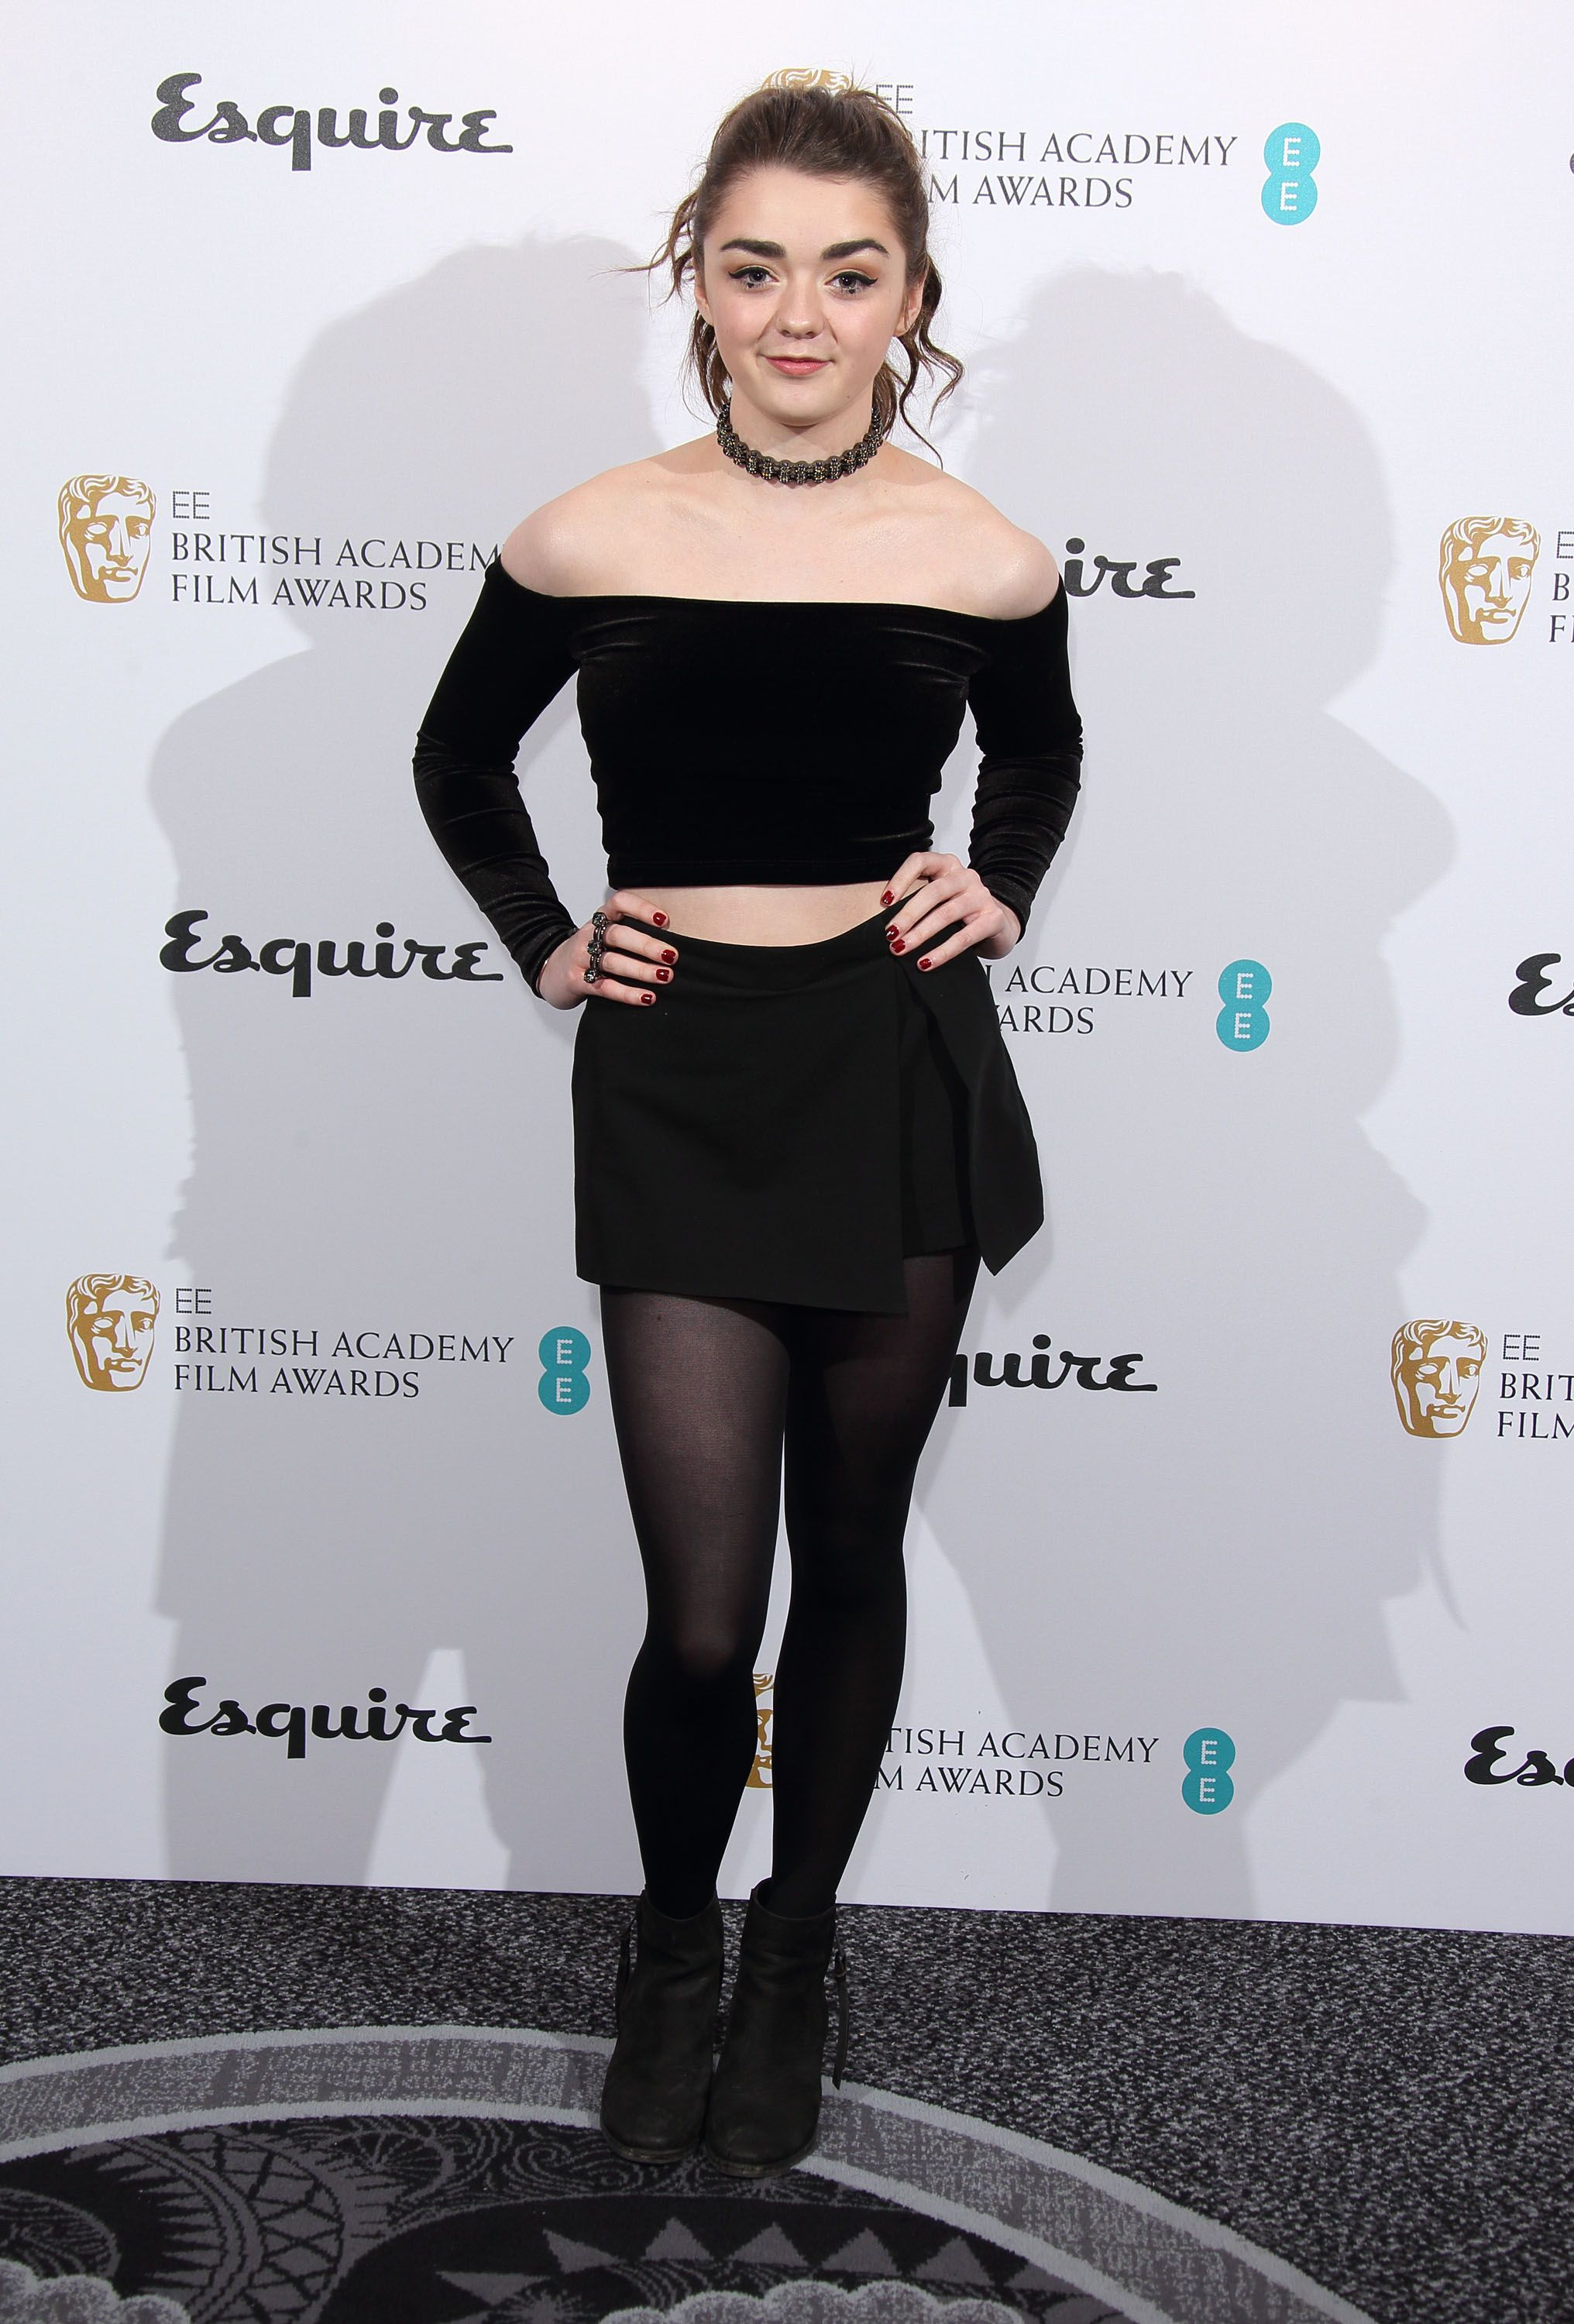 Images Maisie Williams nudes (49 photo), Ass, Hot, Instagram, cameltoe 2019